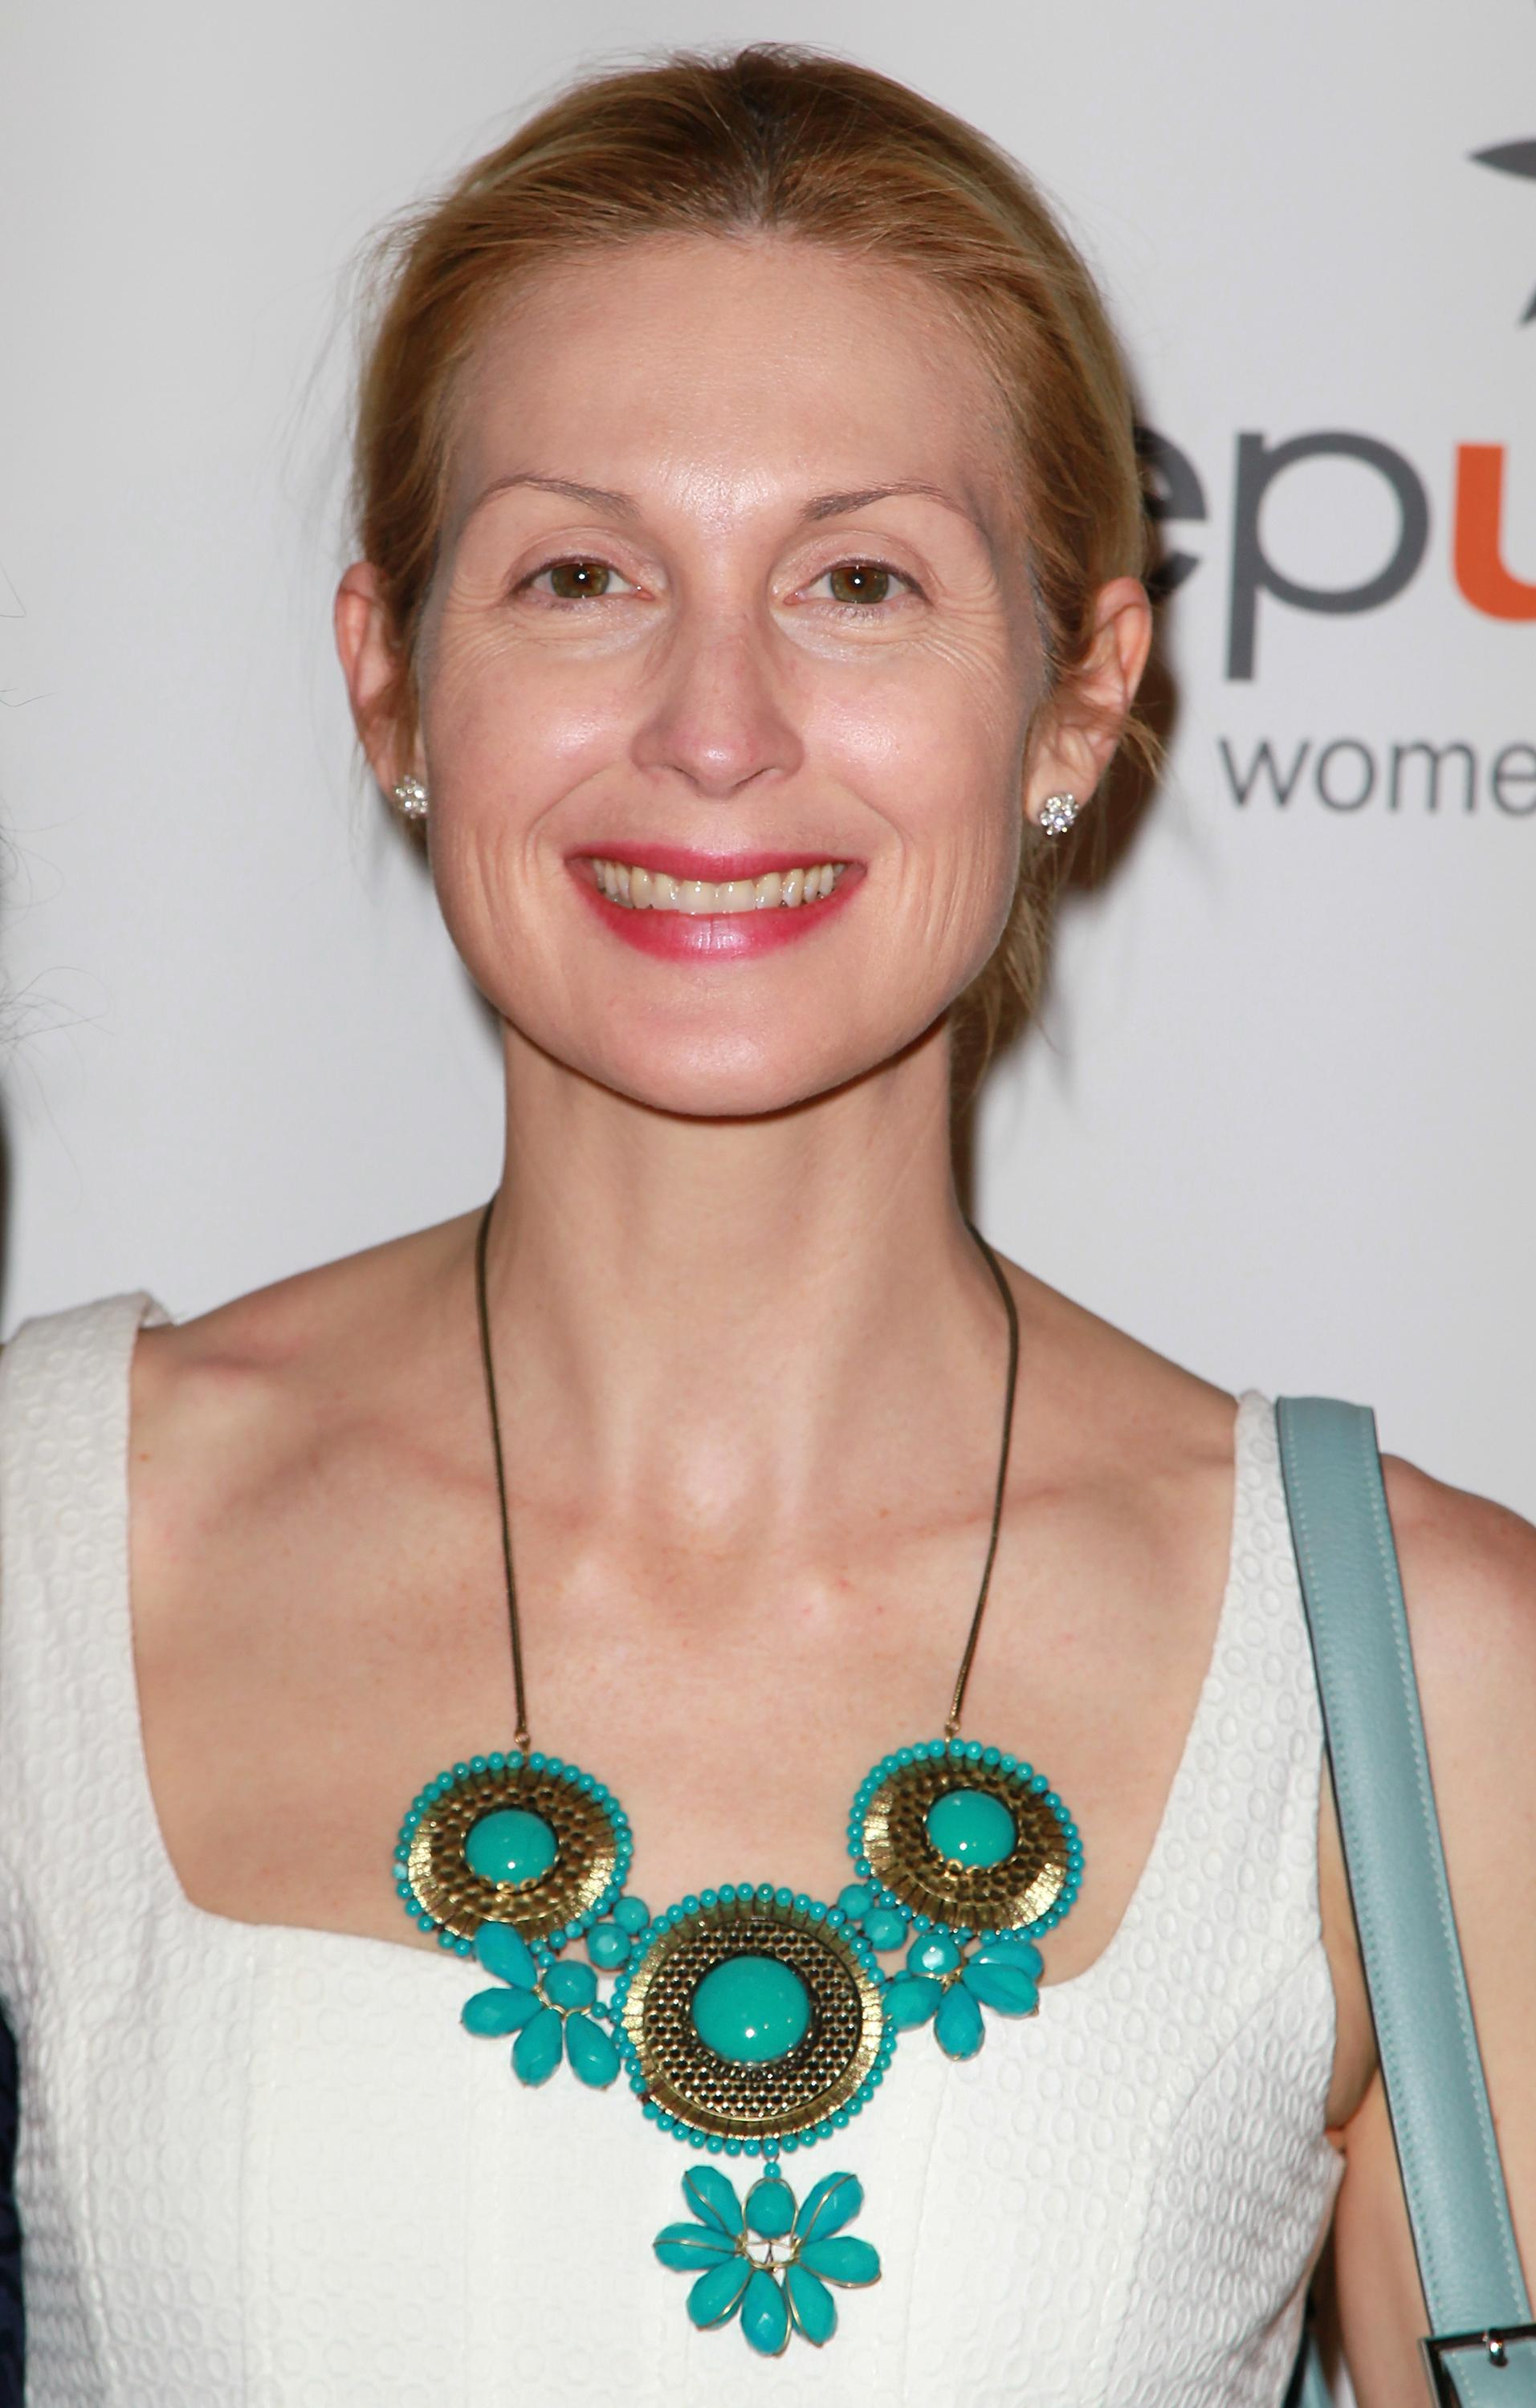 Kelly Rutherford - Actress Wallpapers